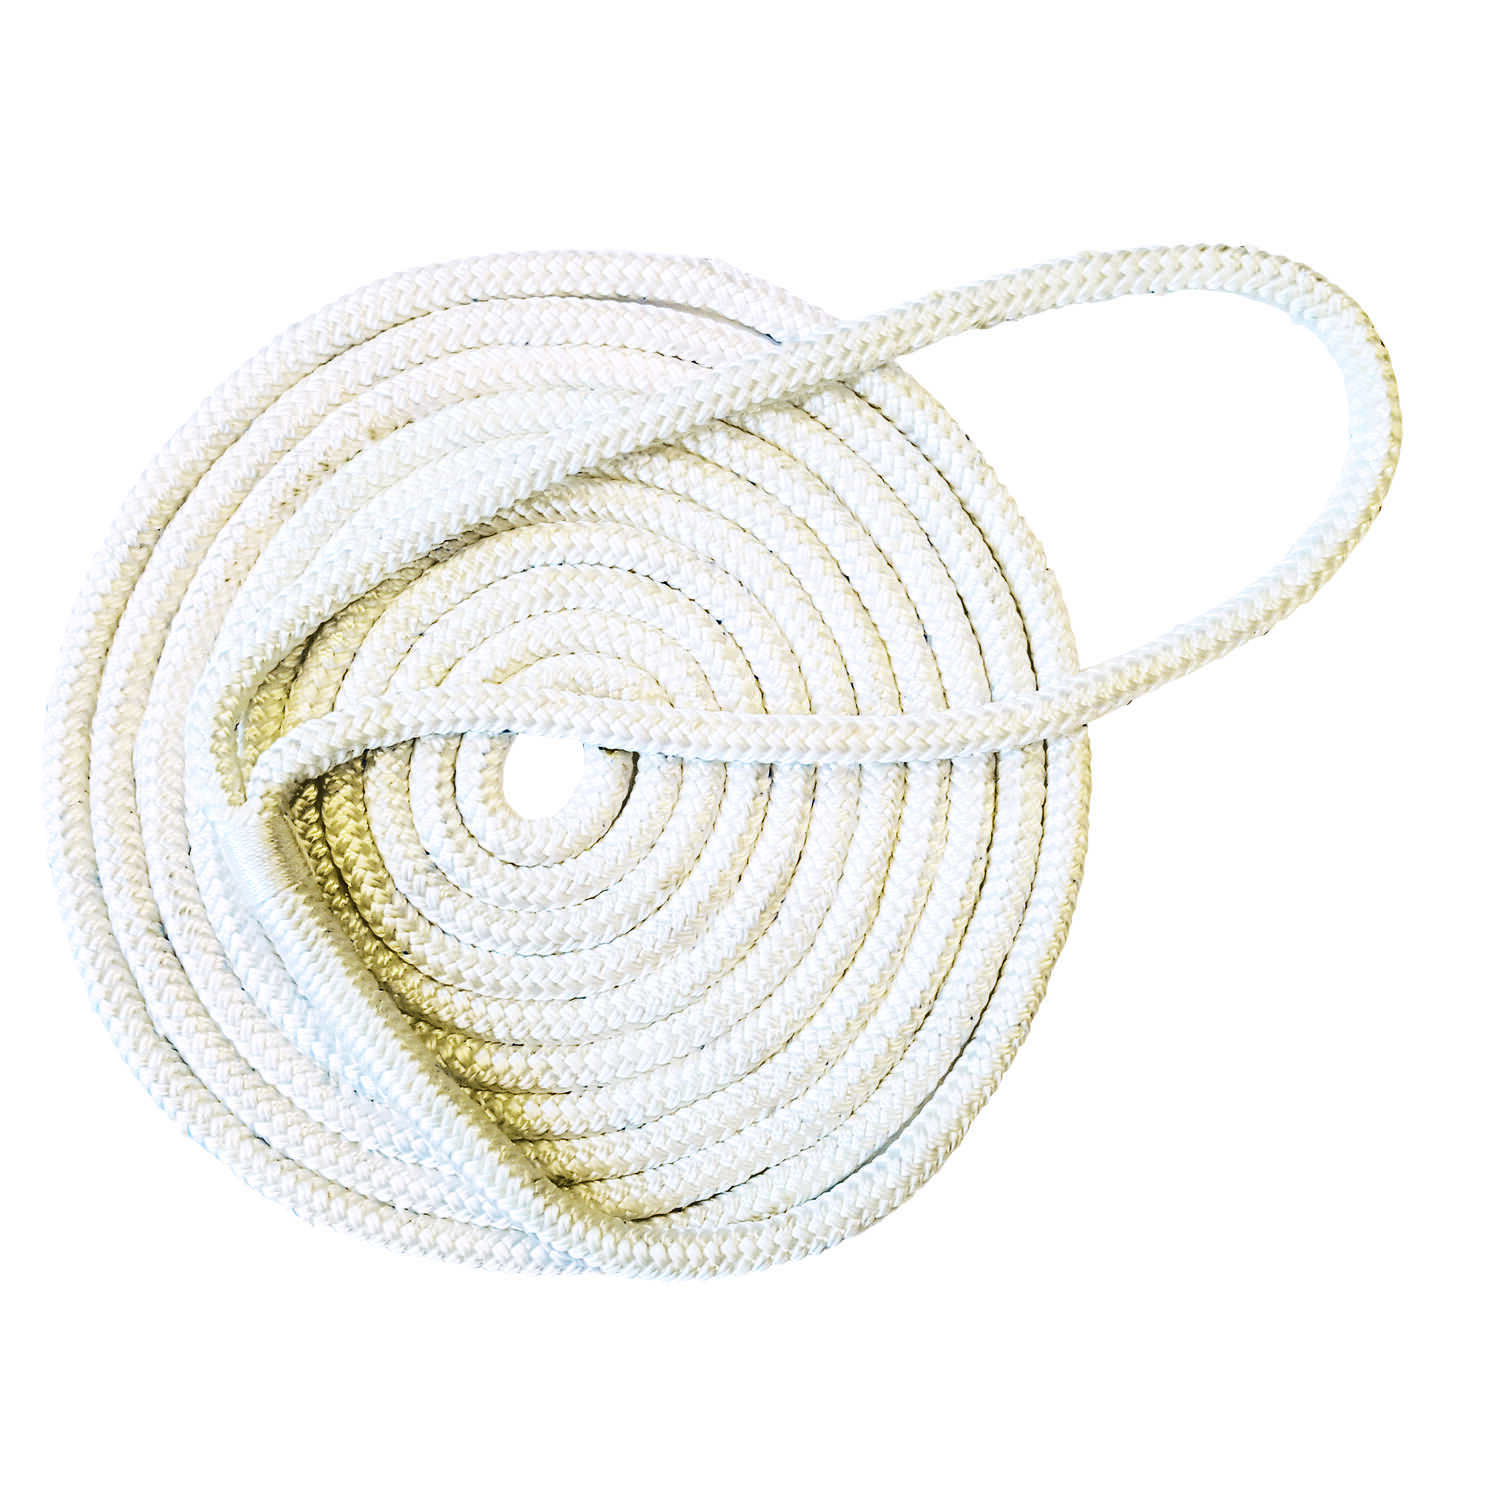 Tommy Docks  Tommy Docks  3/8 in. Dia. x 15 ft. L White  Diamond Braided  Nylon  Dock Line